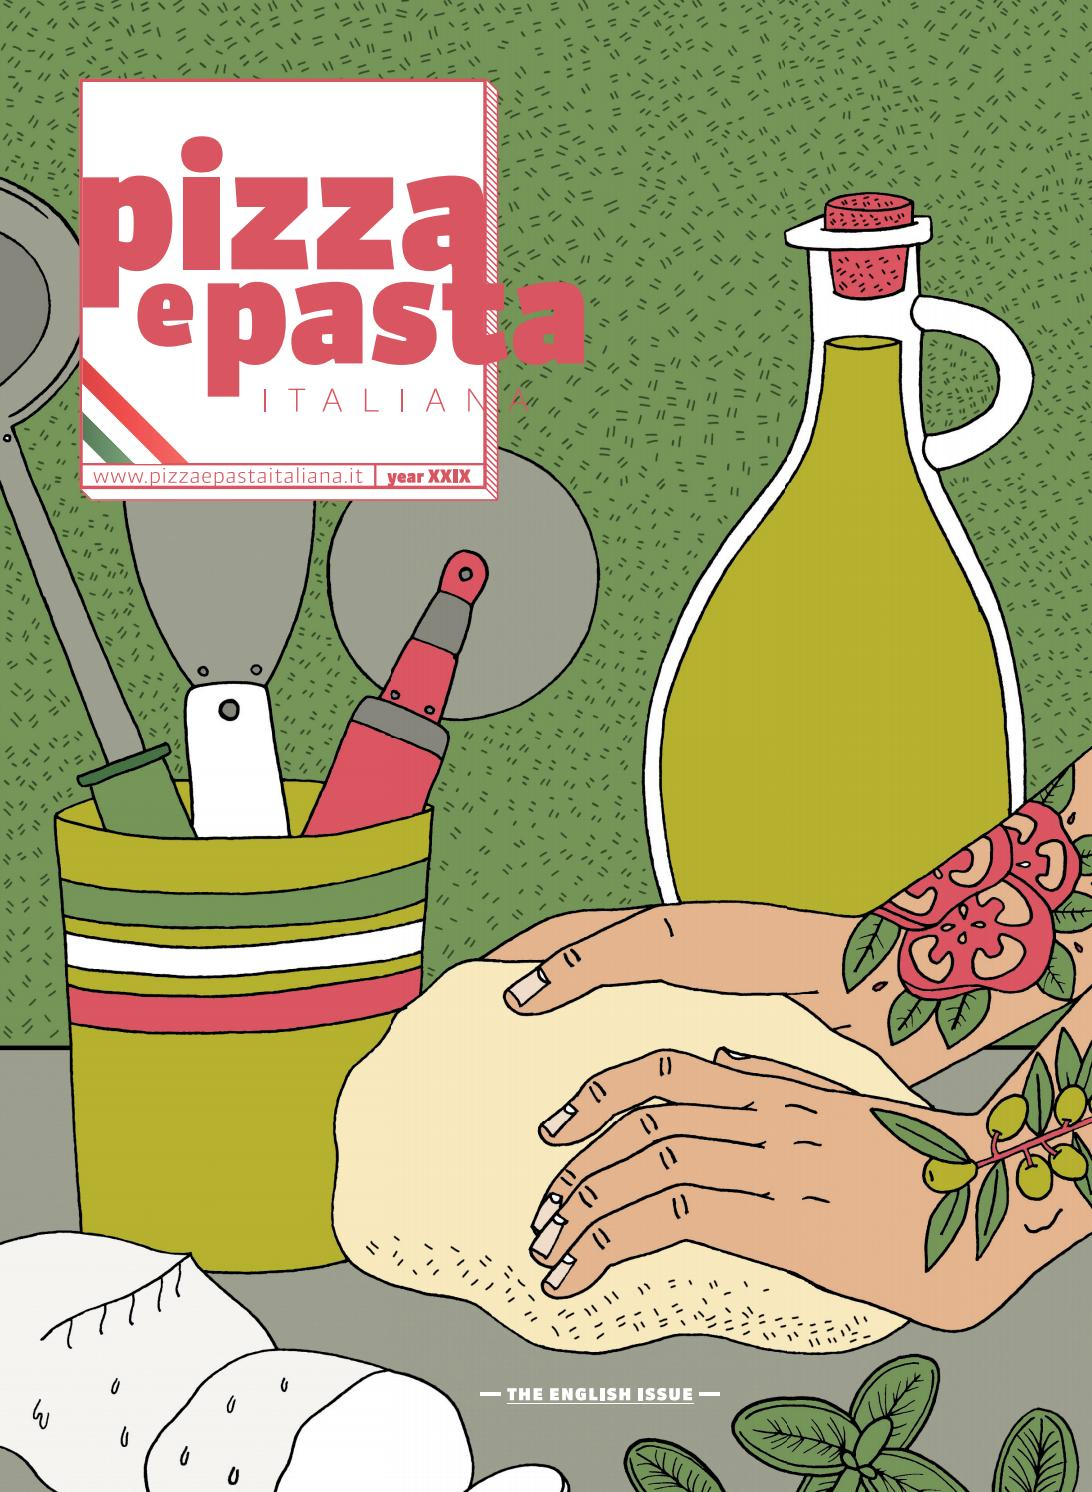 Arte E Pizza Menu Rimini Pizza E Pasta Italiana English Issue By Pizza E Pasta Italiana